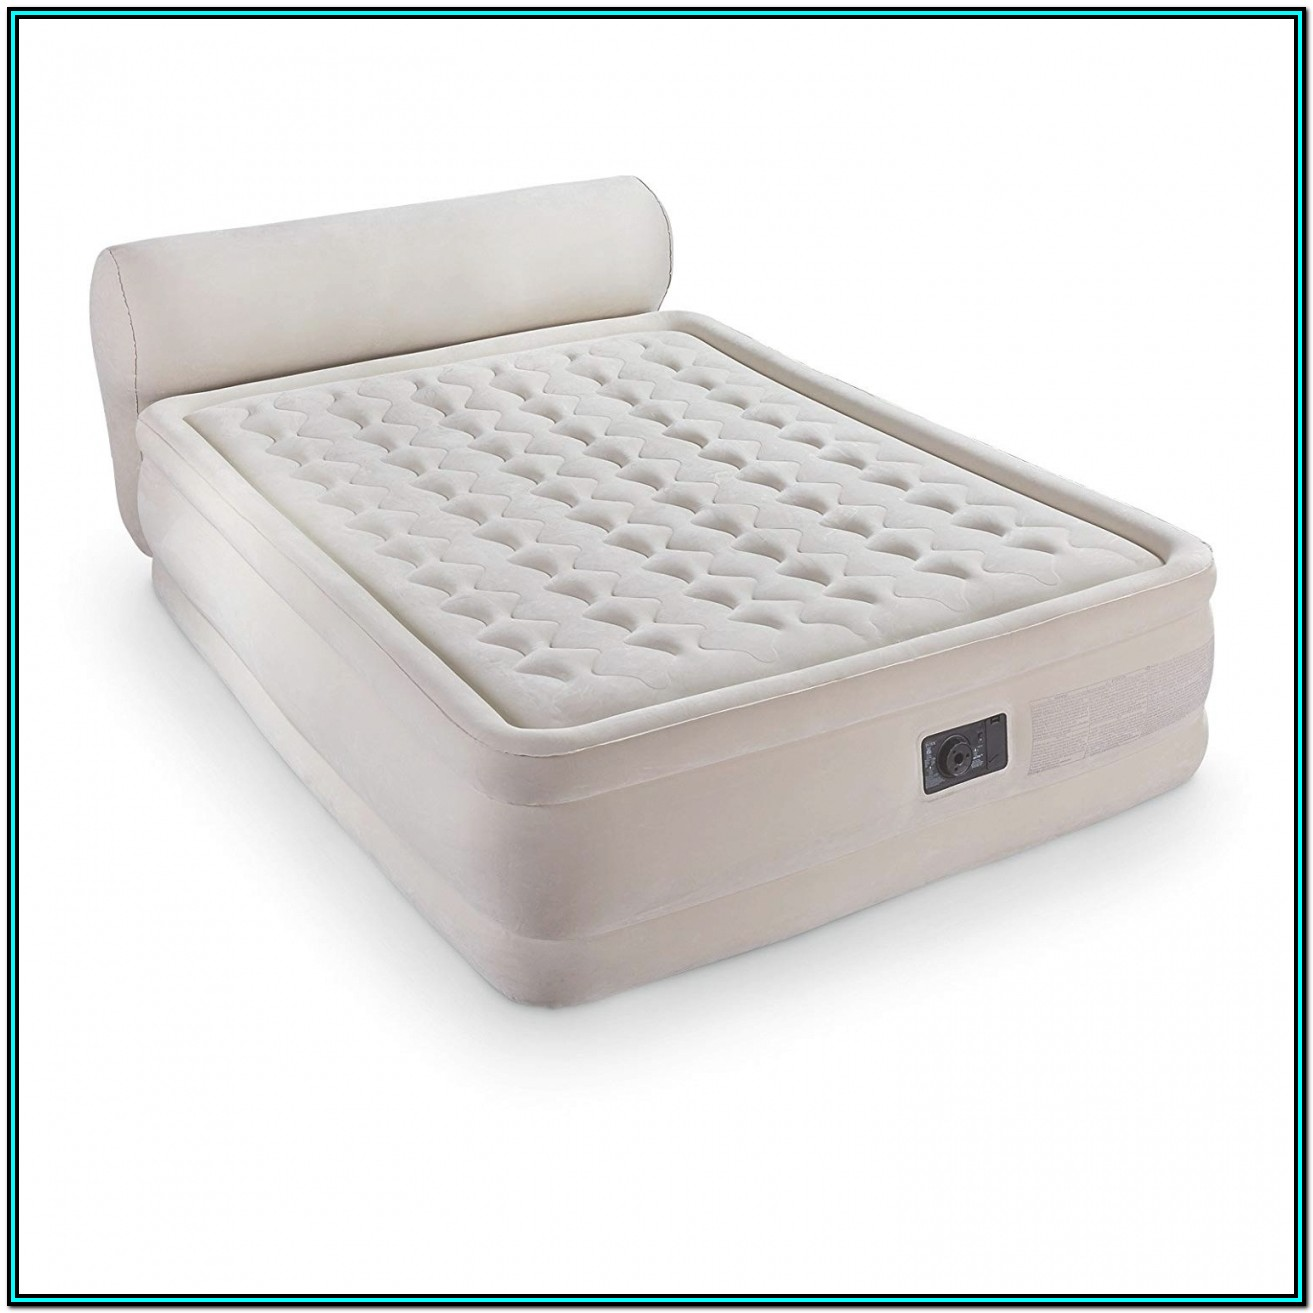 Bed Bath And Beyond Air Mattress Full